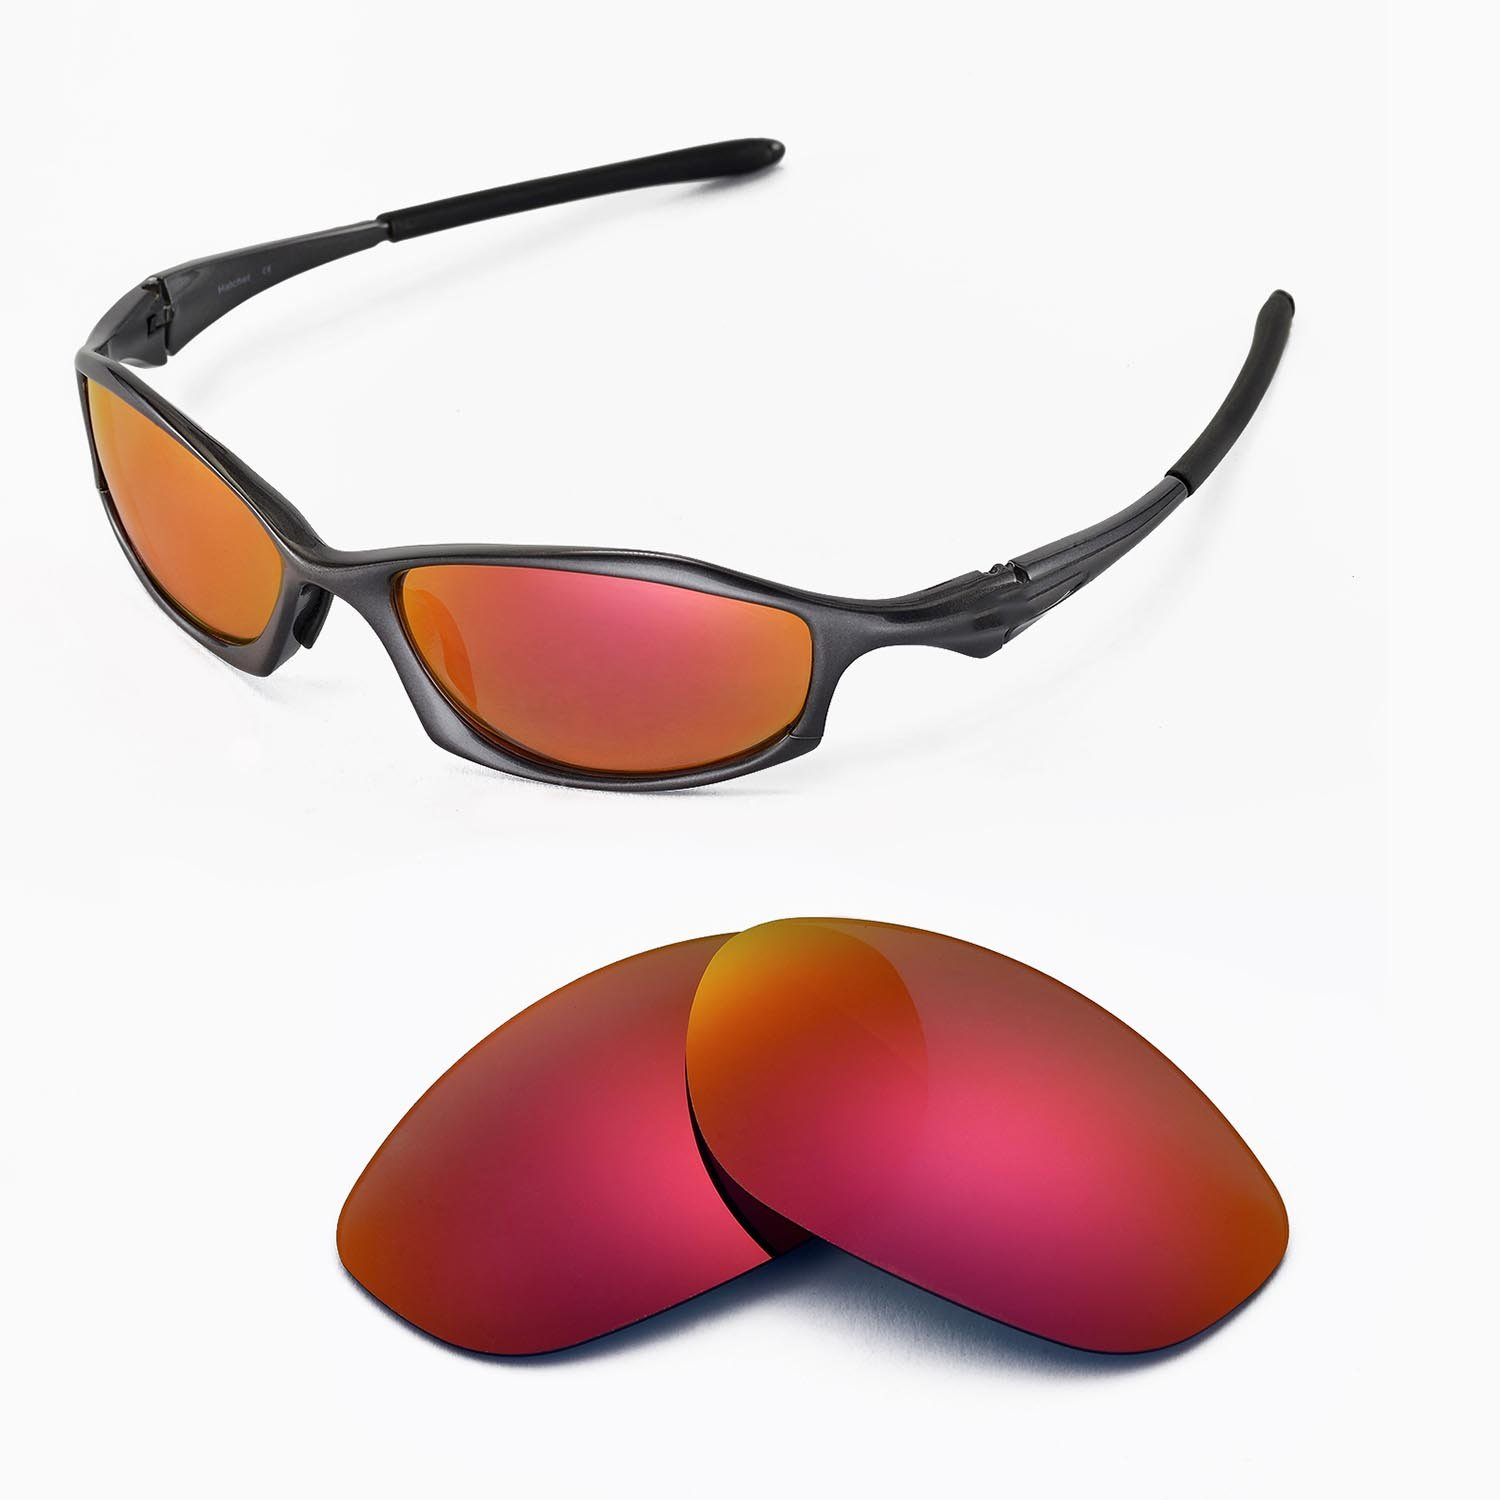 2845d57545 Amazon.com   Walleva Replacement Lenses for Oakley Hatchet Wire Sunglasses  - Multiple Options Available (Fire Red Mirror Coated - Polarized)   Sports  Fan ...